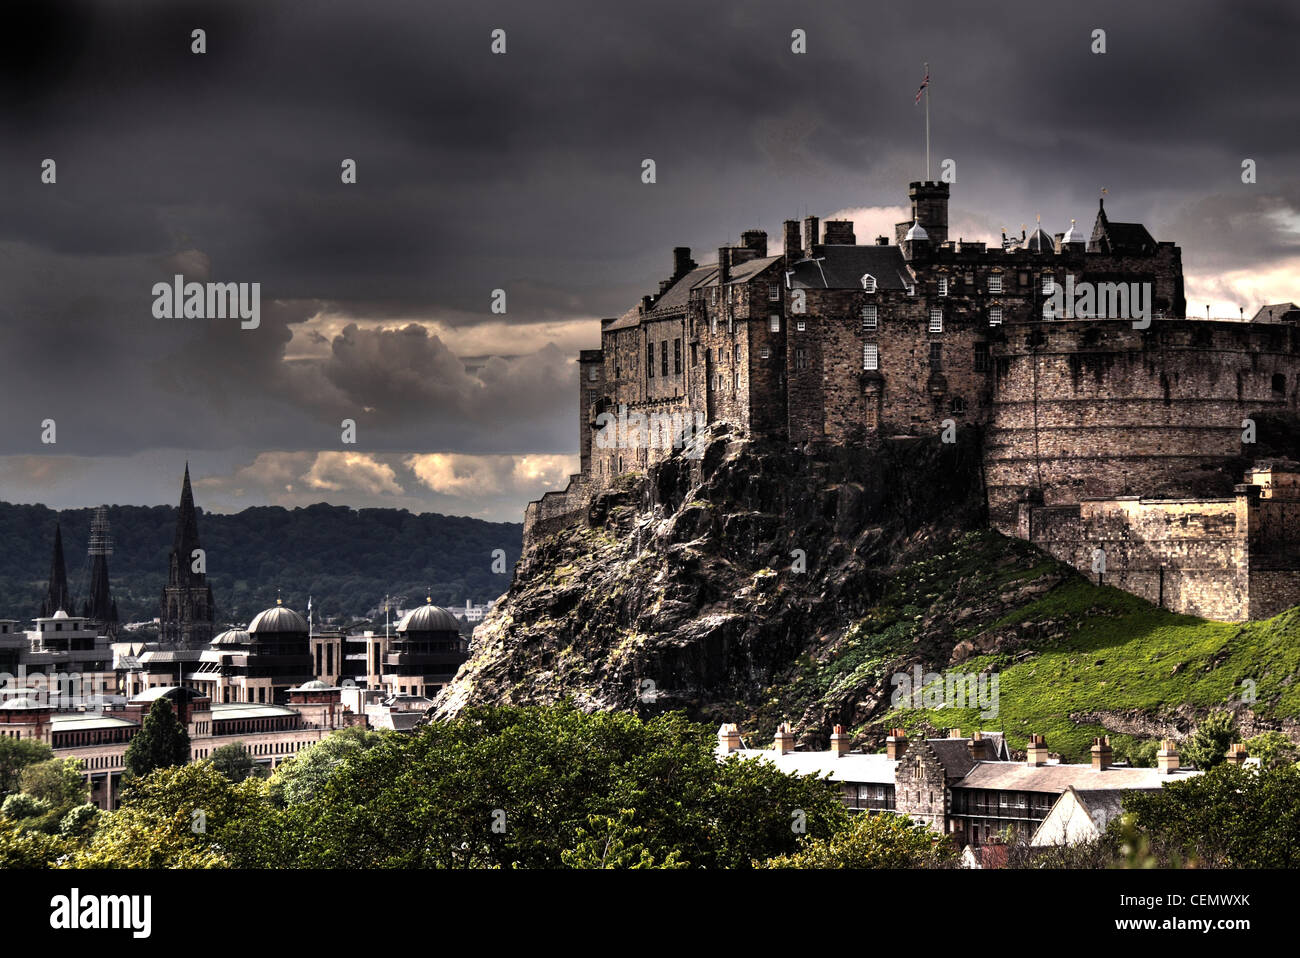 Edinburgh,Castle,from,Science,Museum,roof,city,Scotland,capital,UK,view,pano,panorama,gotonysmith,drama,dramatic,sky,gray,grey,citybelow,scottish,independance,independence,home,rule,devolution,parliament,SNP,national,party,@Hotpixuk,Government,moody,future,election,world,capitals,class,GotonySmith,hilltop,historic,history,historical,icon,iconic,kingdom,landmark,landmarks,lowlands,lothian,medieval,monument,old,outcrop,rock,rocky,Royal,family,scotch,scotland,scots,scottish,sight,sights,scenic,sightseeing,skies,sky,skyline,summer,sun,sunny,sunshine,stronghold,tour,tattoo,tourism,tourists,town,towns,towering,uk,united,white,unesco world heritage,Unesco,old town,Edinburgh Castle,dramatic sky,moody,mody sky,dramatic sky,summer,blue,blue sky,lush,green,trees,vegetation,clouds,Edinburg,Castel,Scots,Scottish,scotland,nationalistic,stone,tour,travel,tourist,attraction,Tour,tourist,tourism,tourist,attraction,Scotland,Capital,City,Scots,Scottish,icon,iconic,@Hotpixuk,HotpixUk,Royal Family,buy,pictures,of,Edinburgh,Buy Pictures of,Buy Images Of,Edinburgh Castle,Tourist Attraction,city Centre